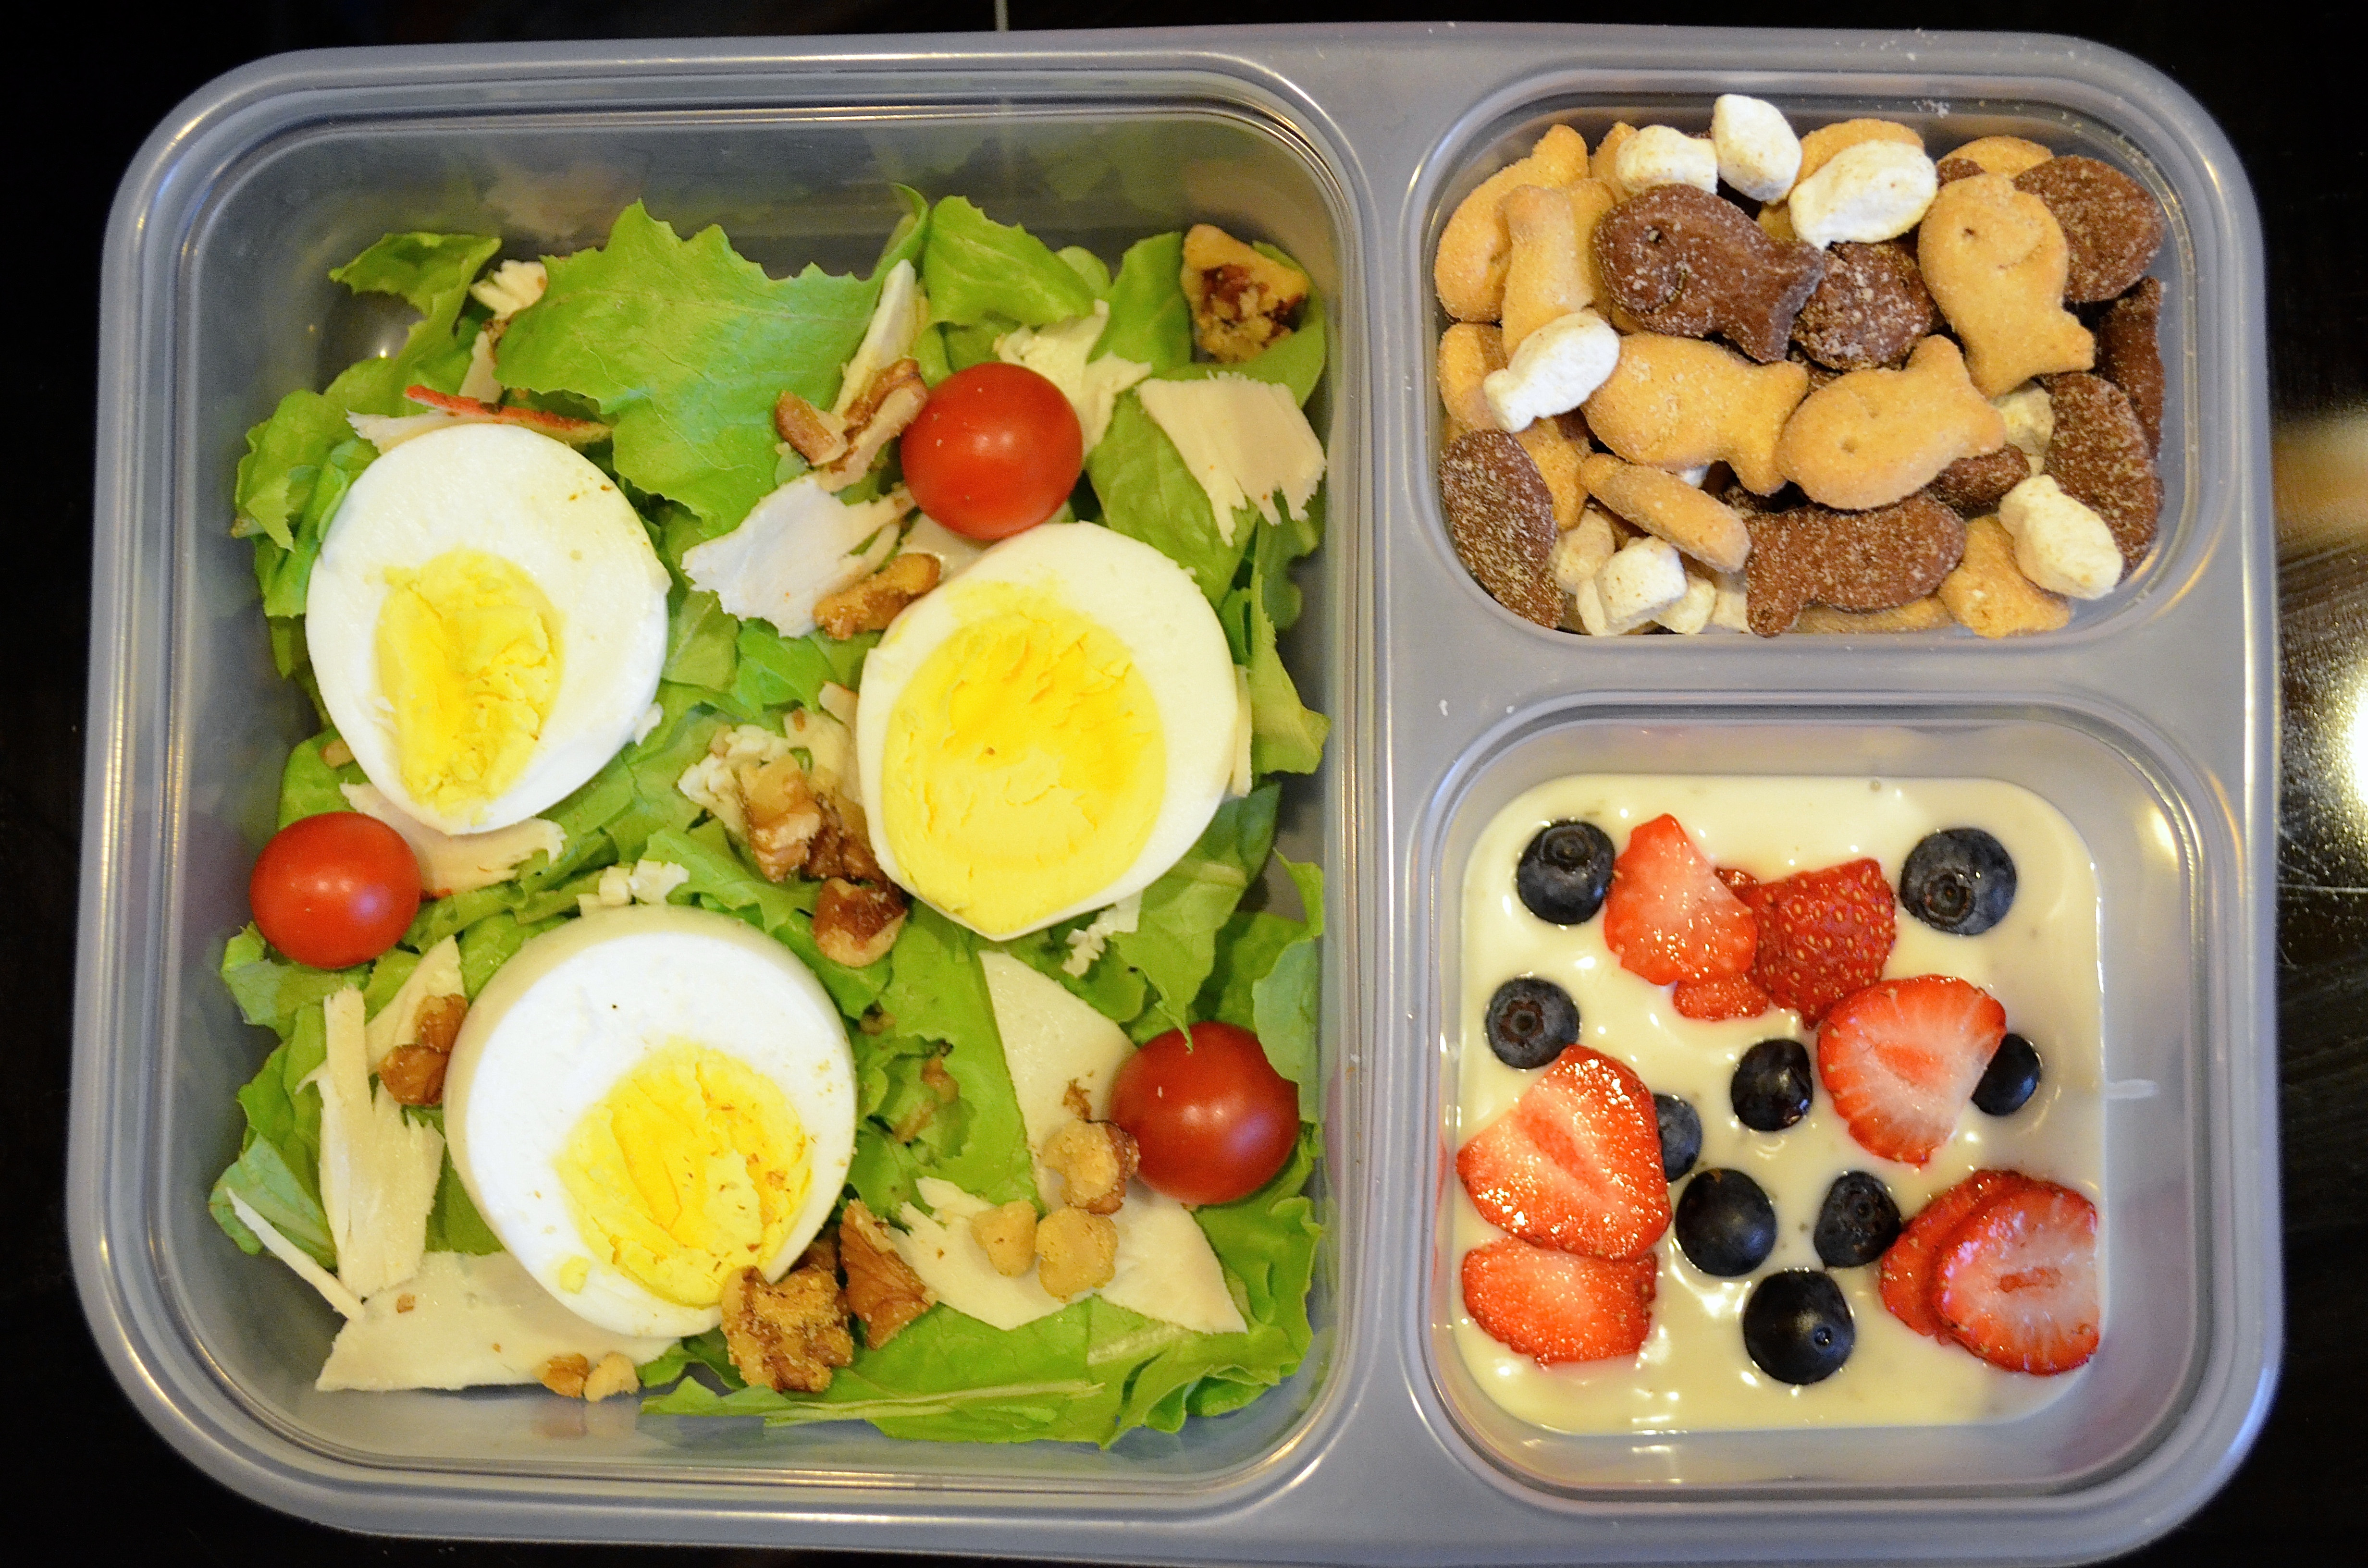 Healthy Lunches For Teachers  Healthy Salad Bento Box Back to School Lunch Idea